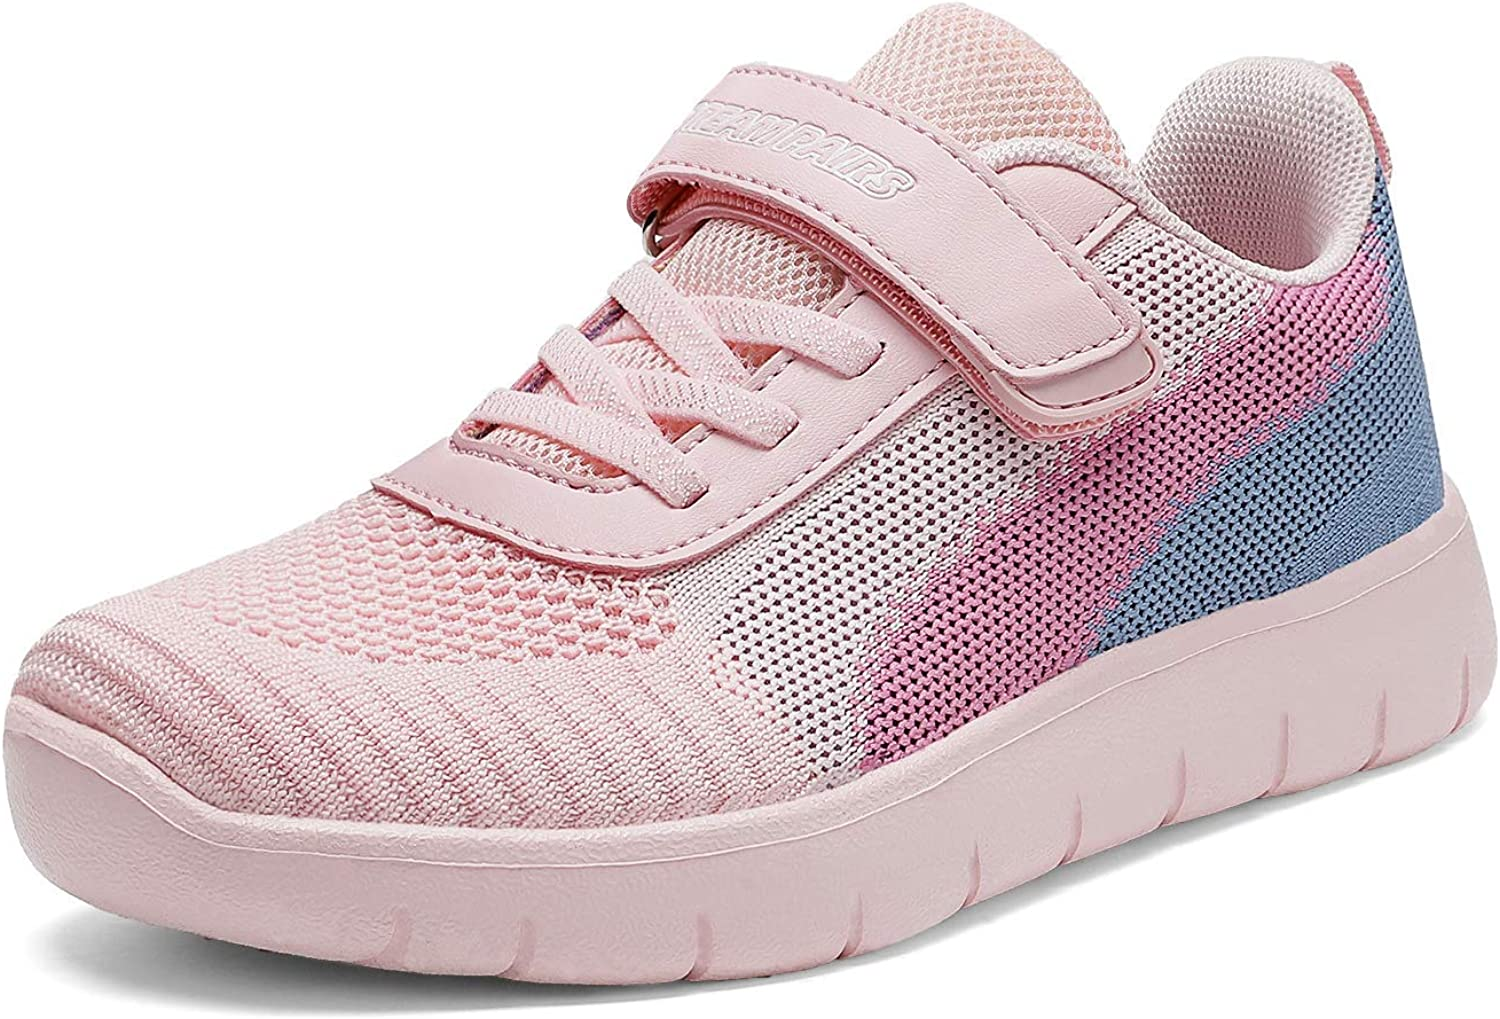 service DREAM PAIRS Boys Girls Sneaker Tennis Shoes Athletic Department store Running